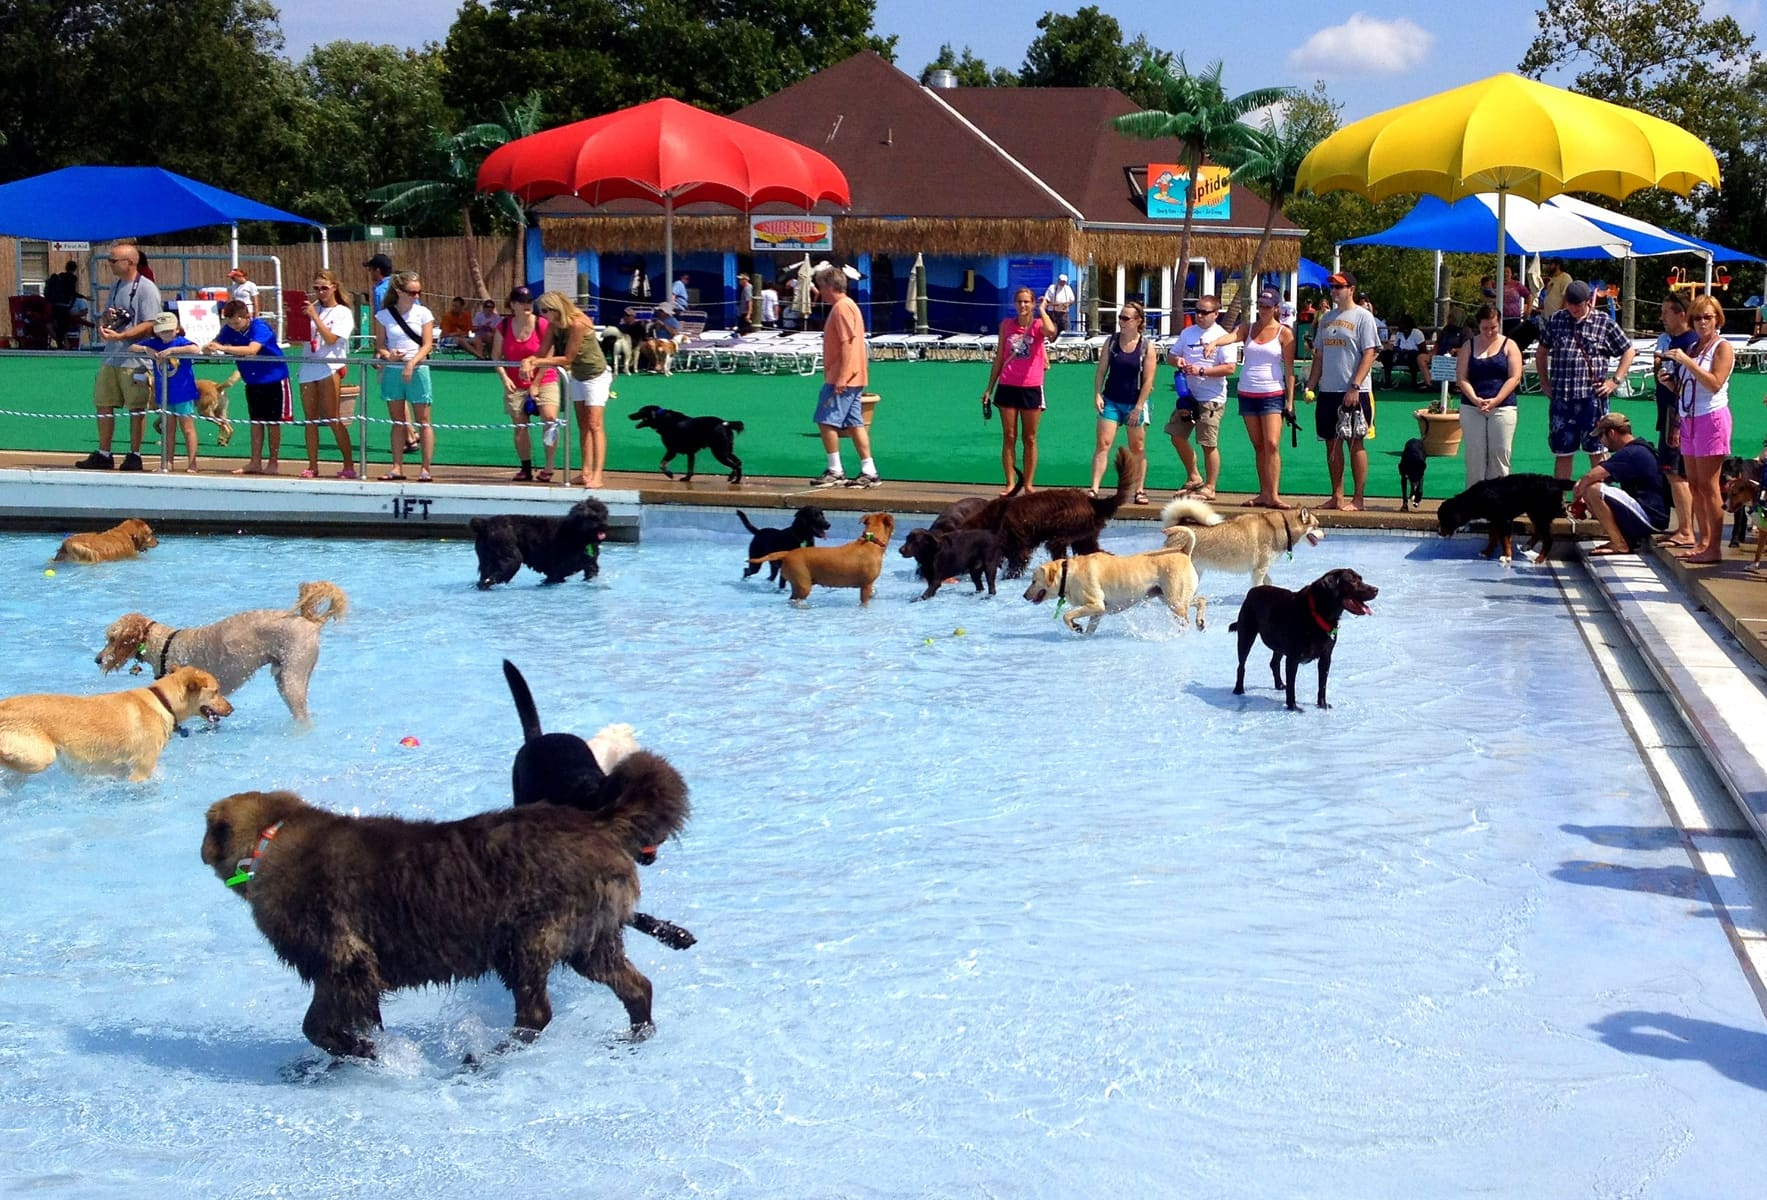 Annual Doggie Swim Day